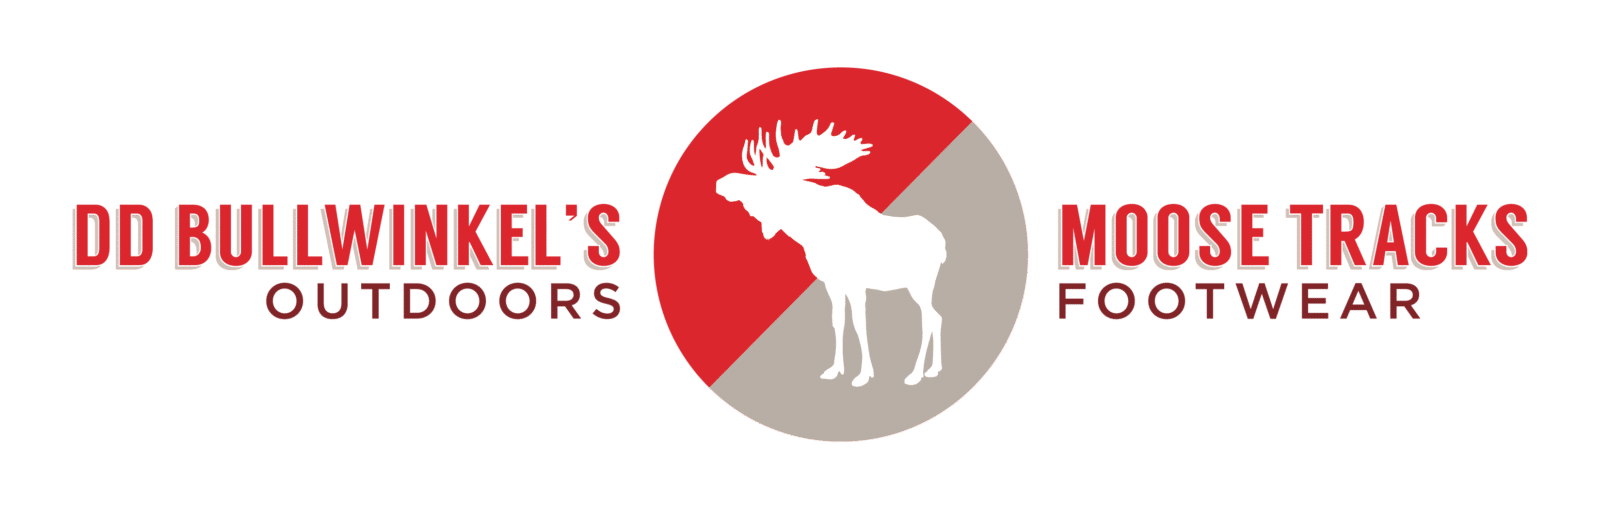 DD Bullwinkels and Moose Tracks logo (2)